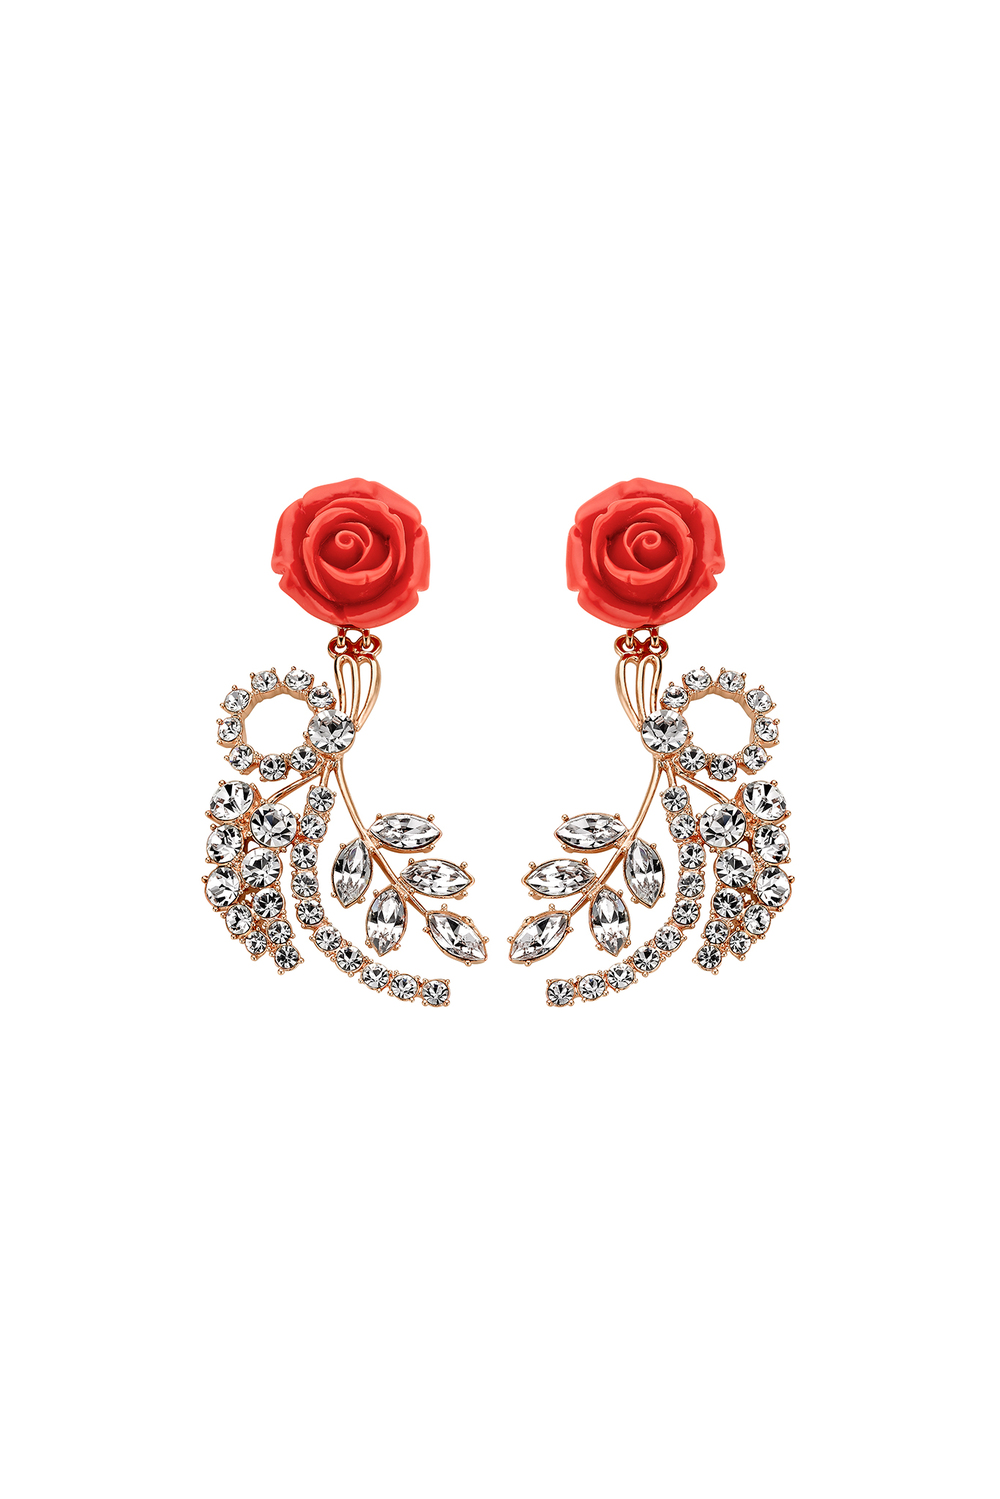 02-03-statement-earrings.jpg